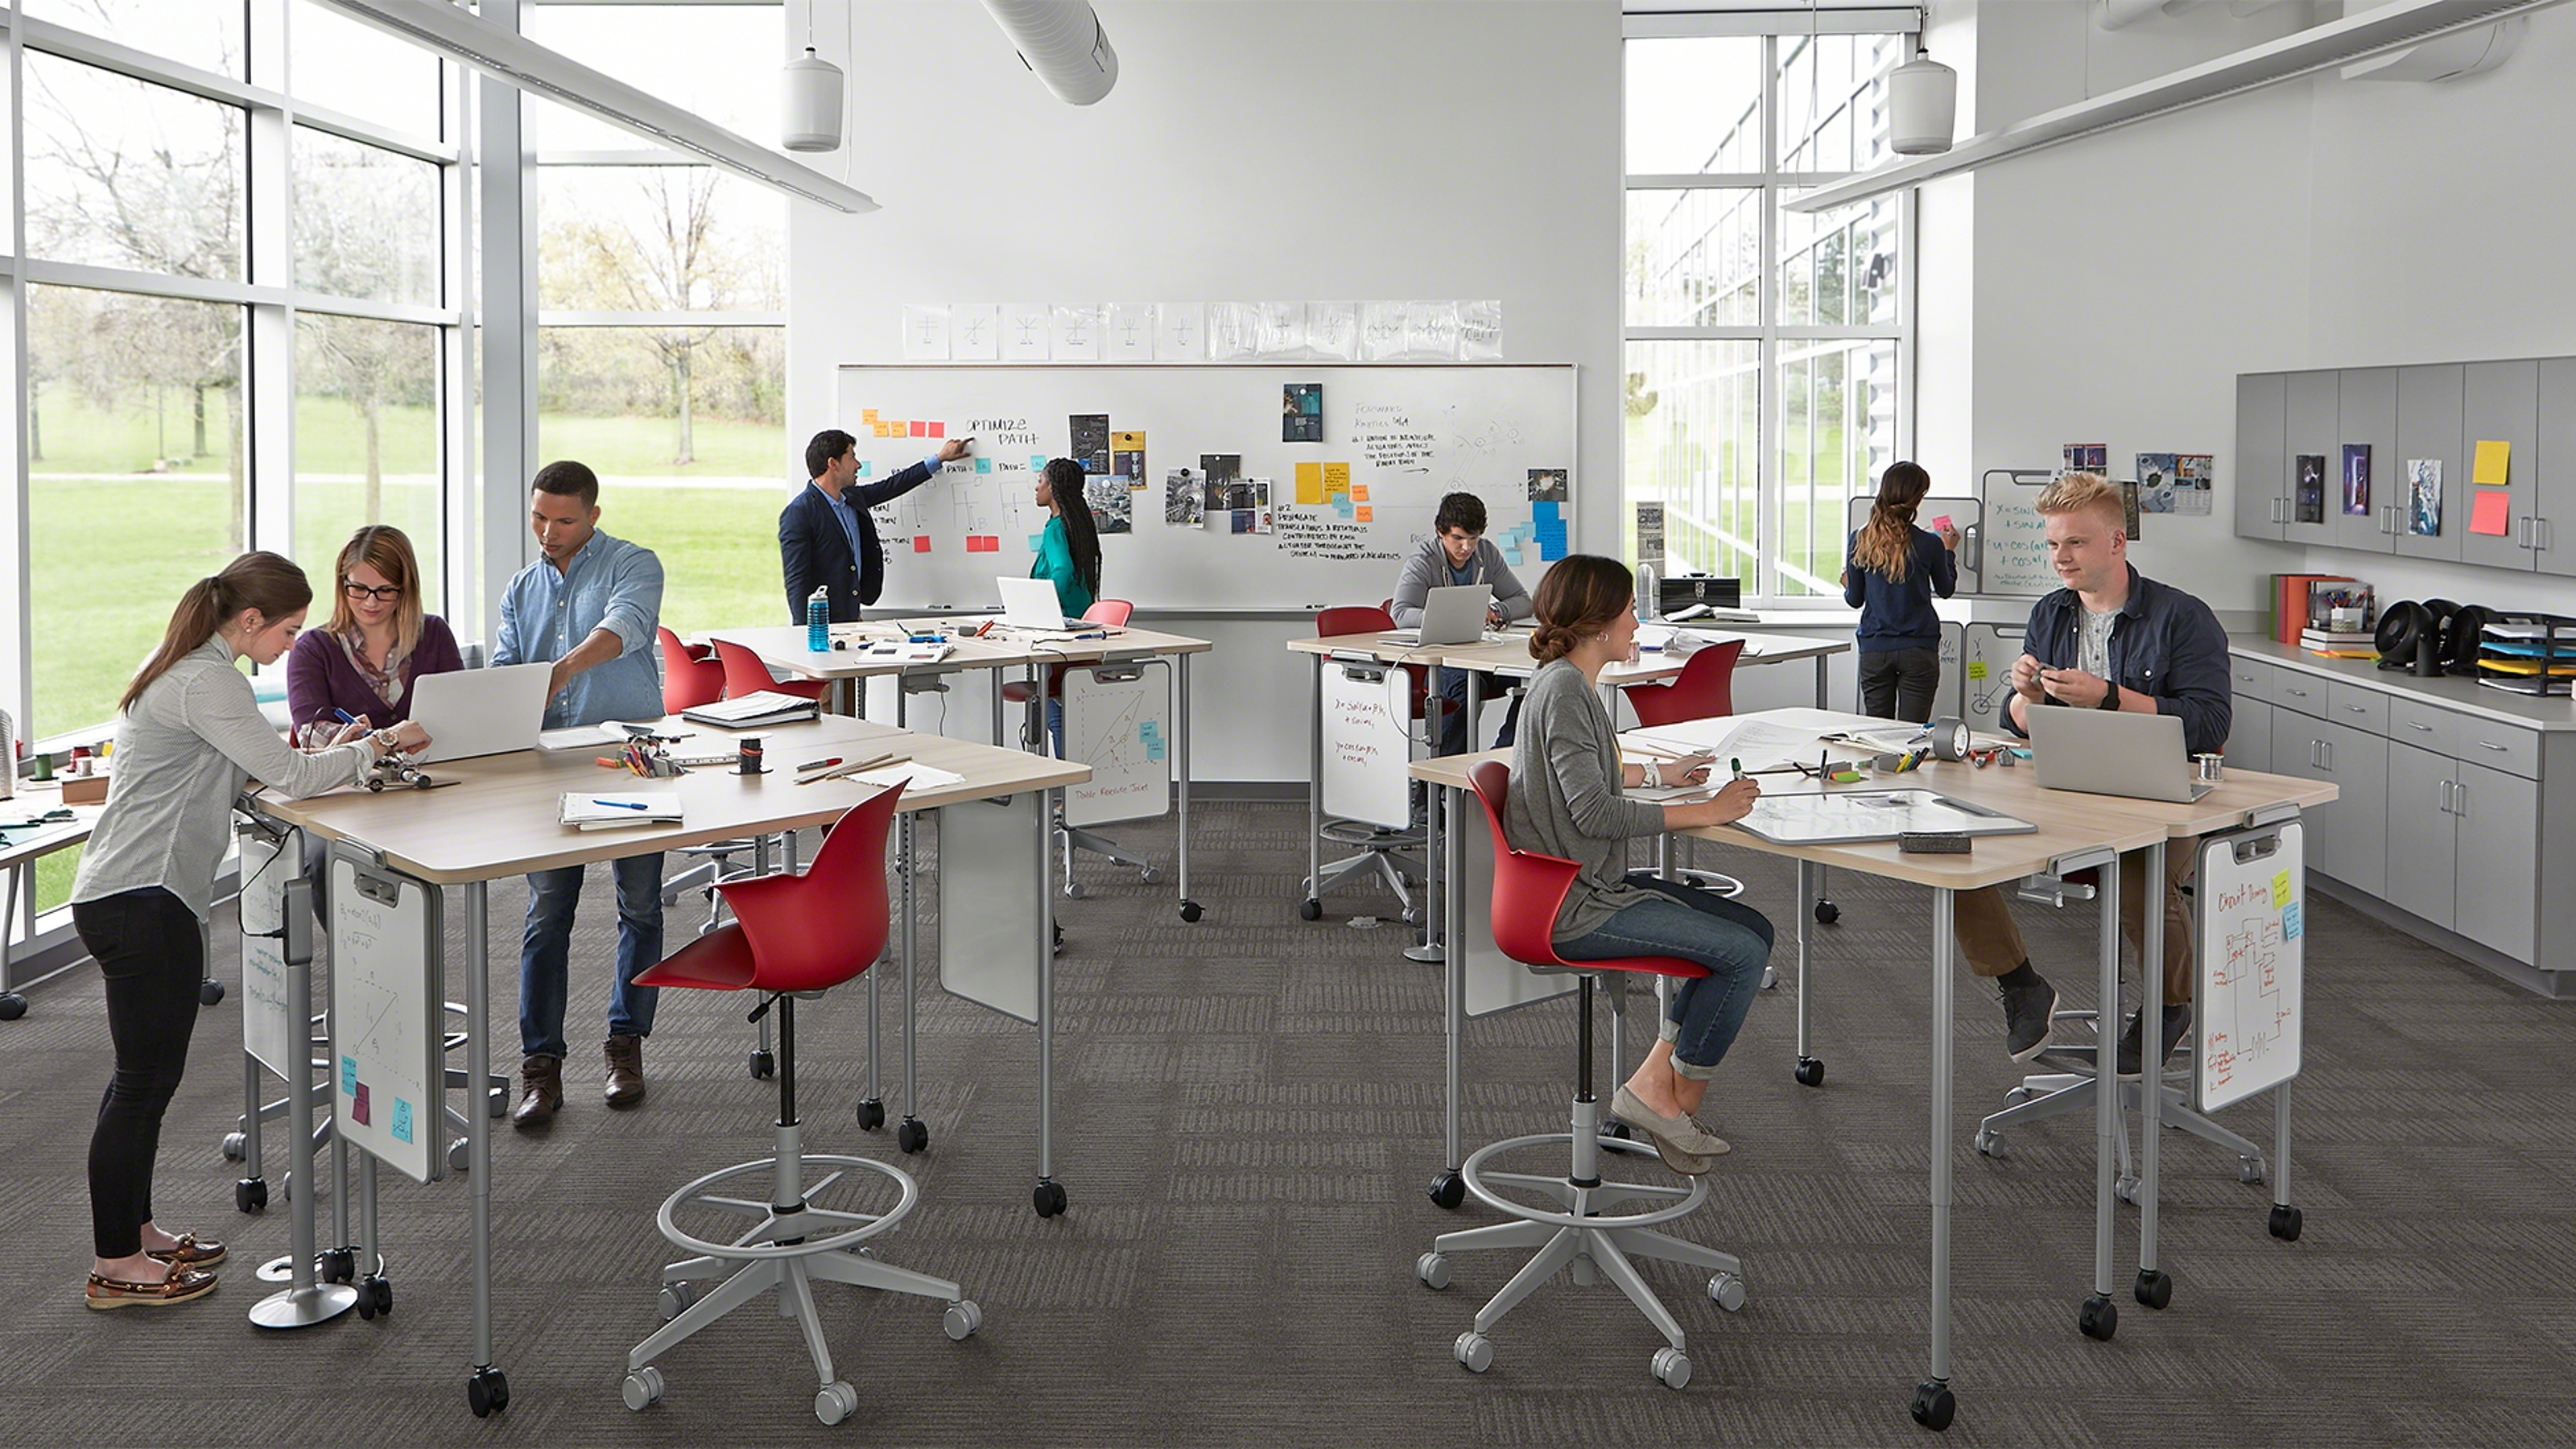 Space Design for Active Learning Classrooms   Steelcase